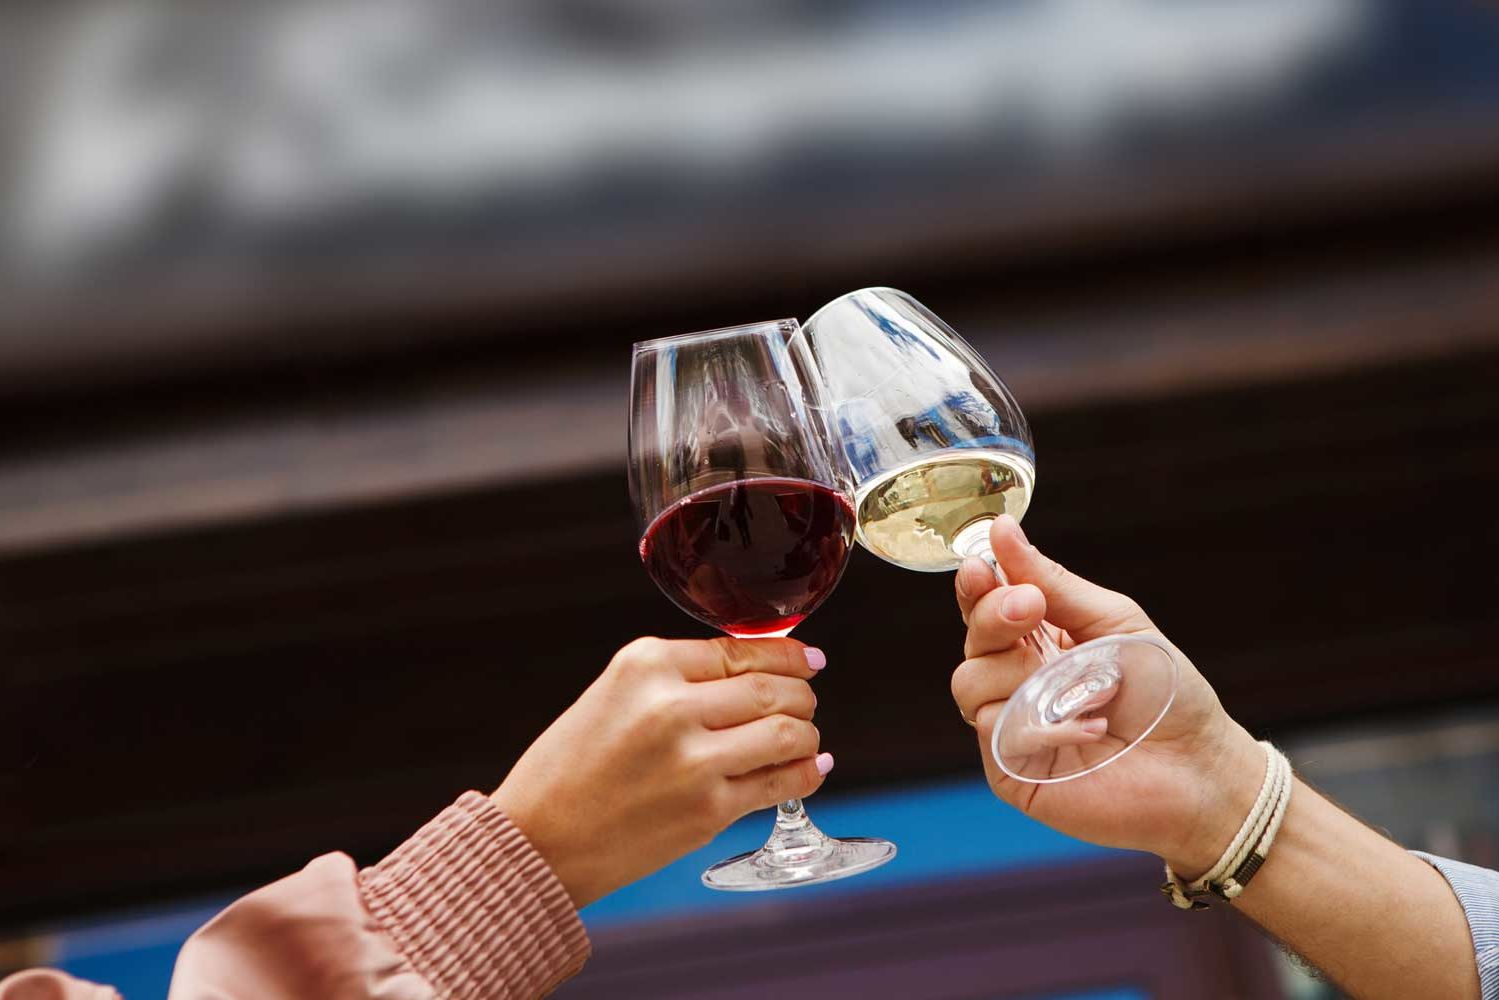 Red or White? Here's What Your Wine Preference Says About You